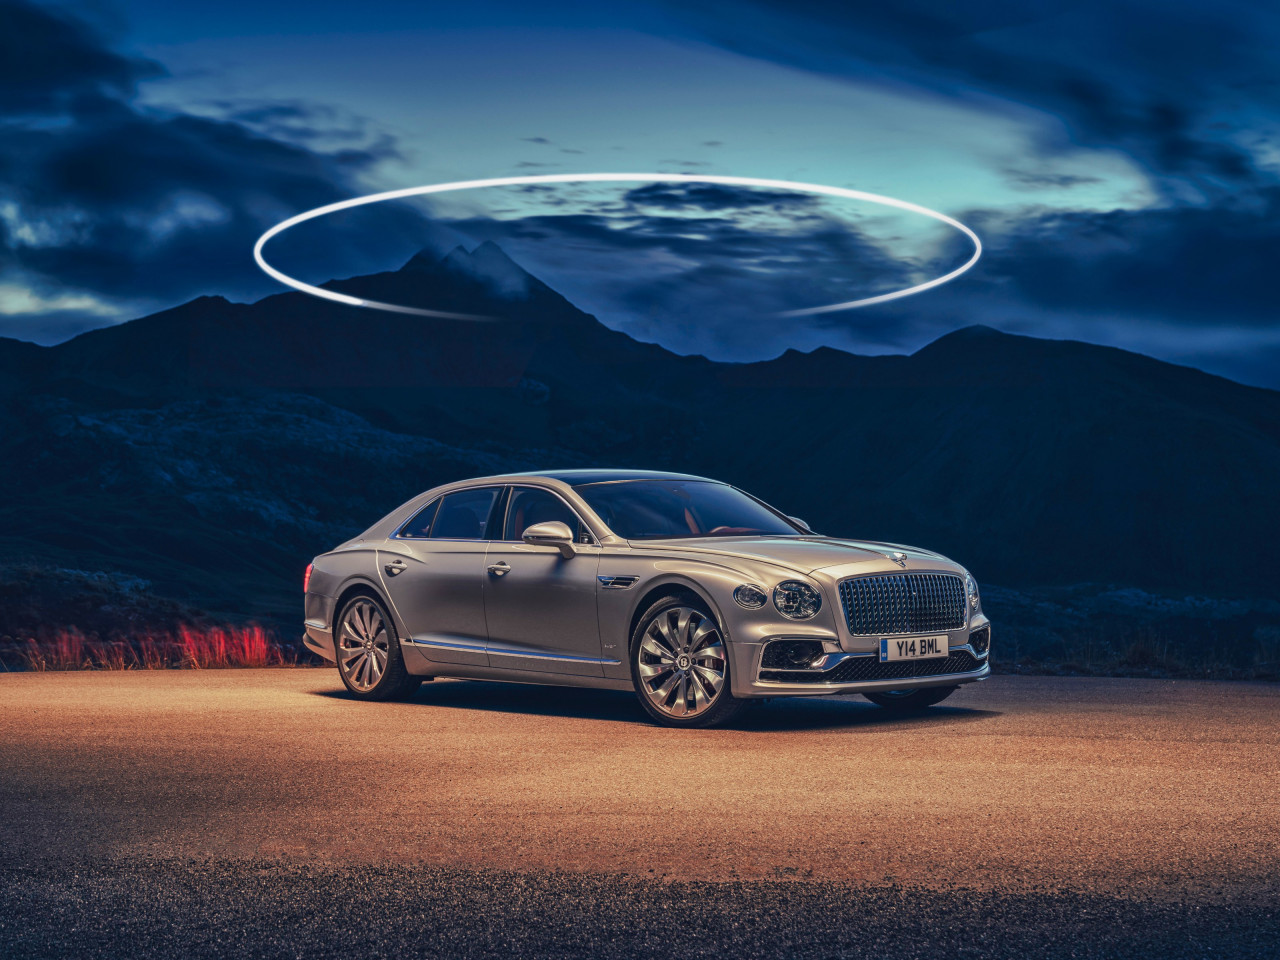 Bentley Flying Spur wallpaper 1280x960